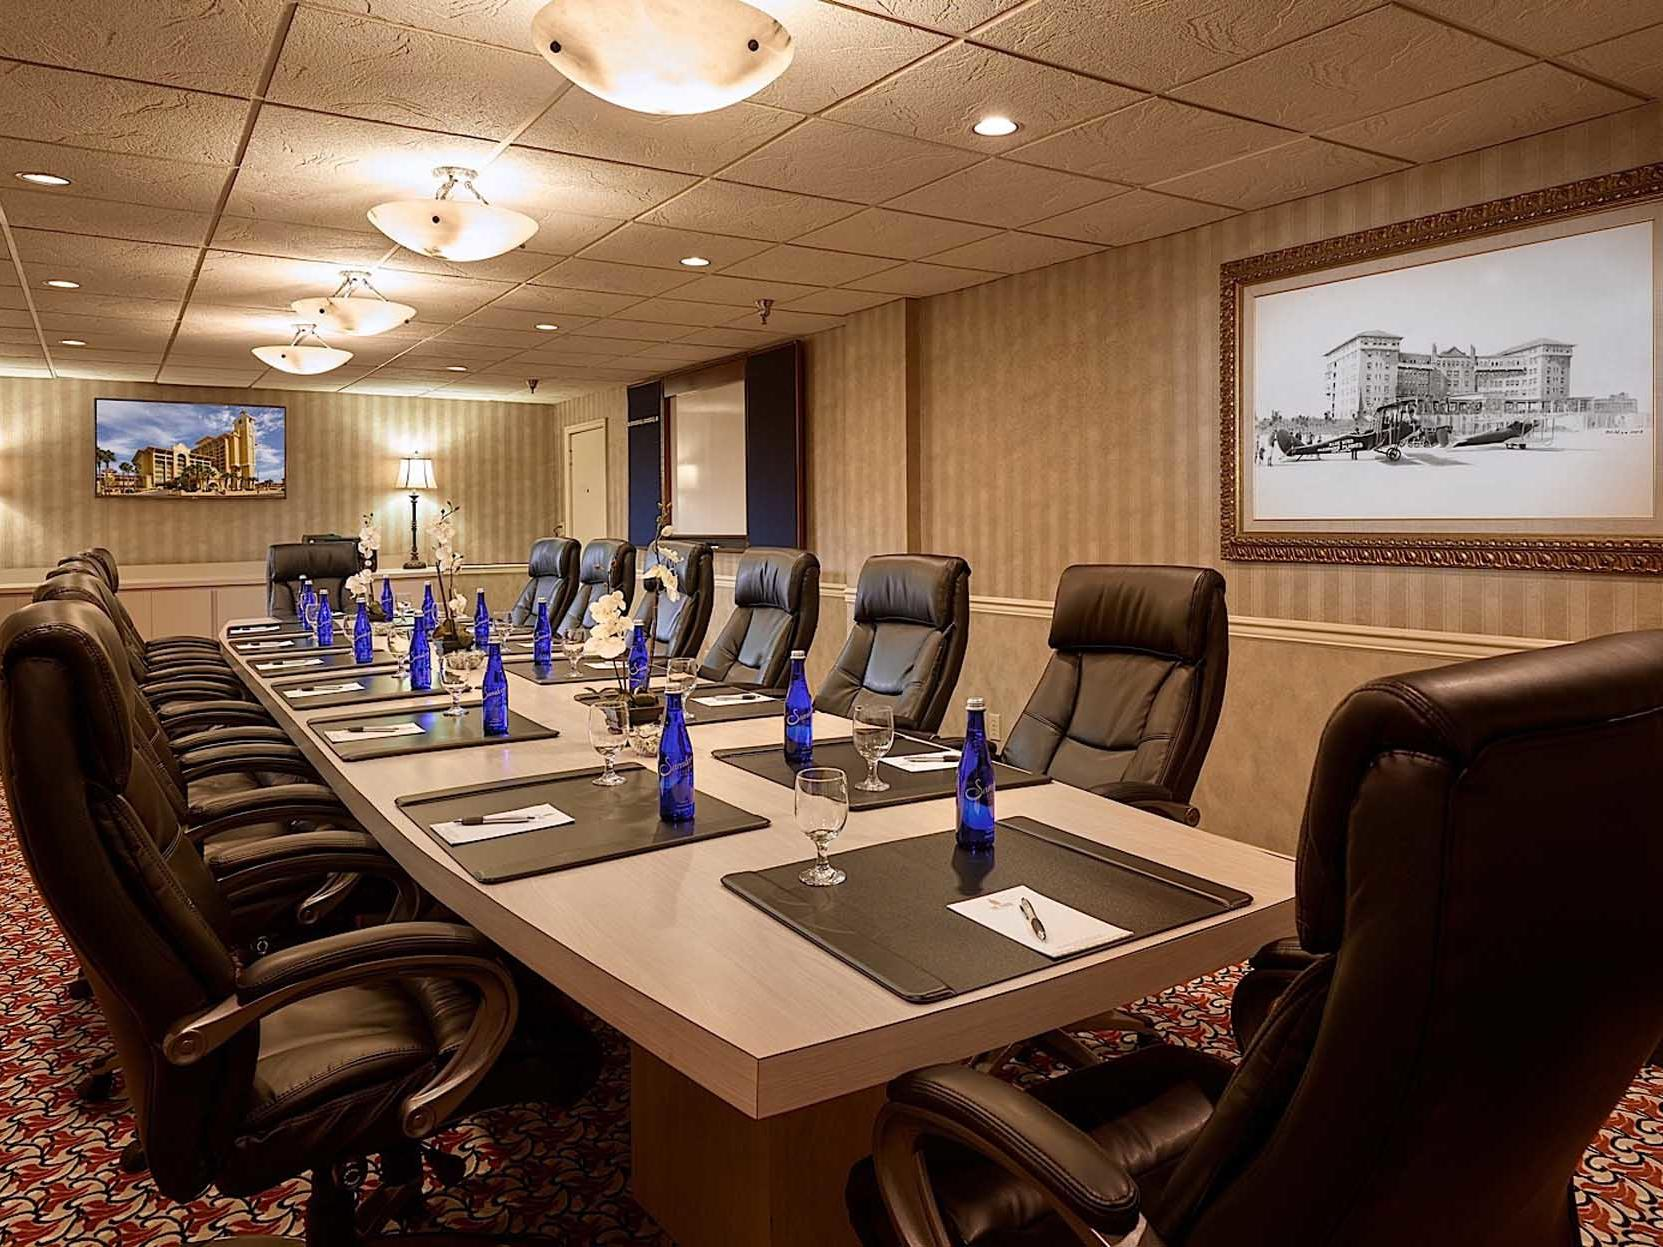 meeting room with conference table and desk chairs